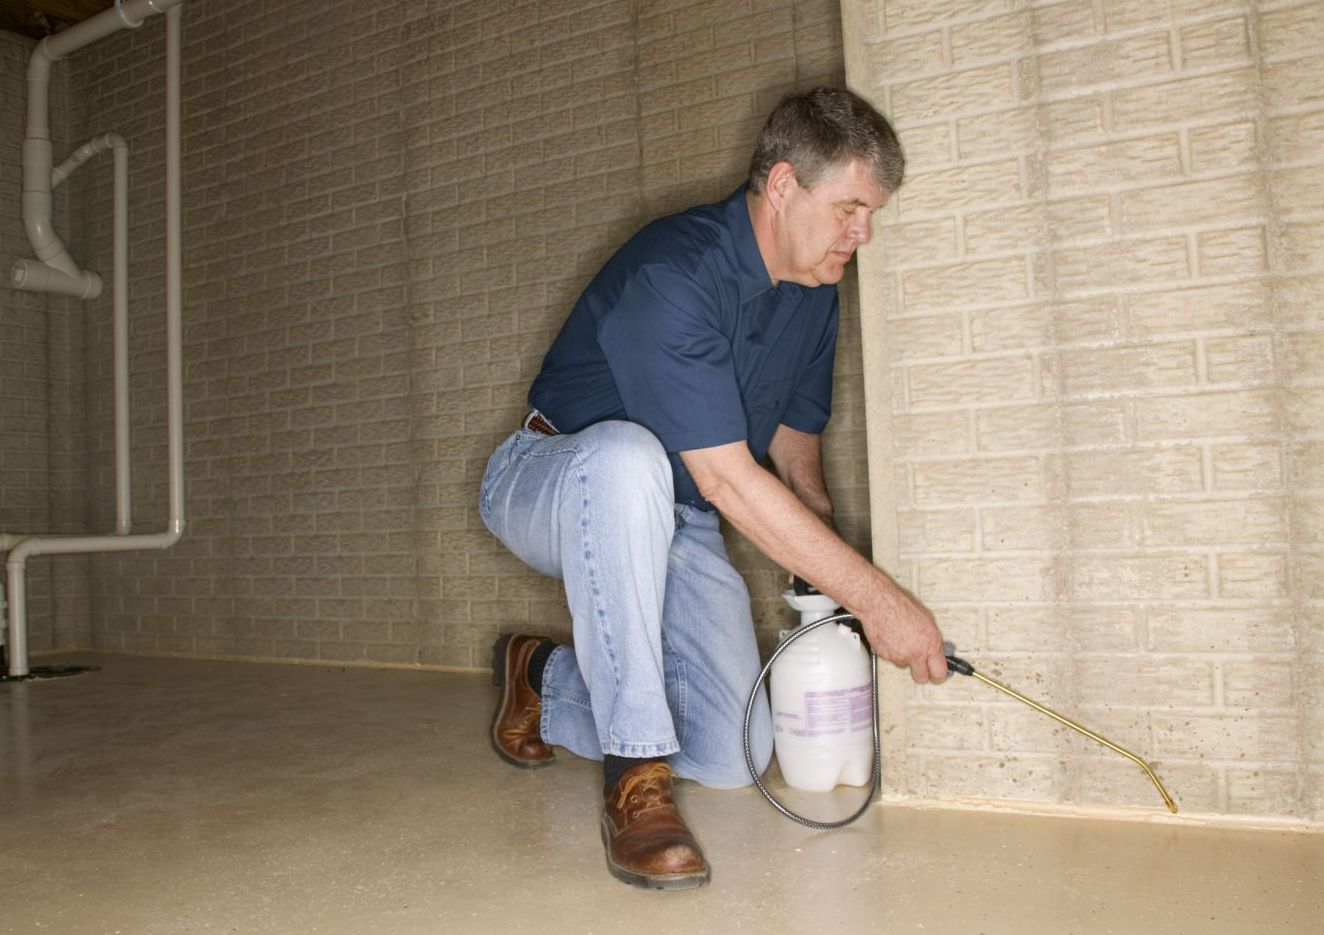 Experienced pest and rodent control expert in Lincoln, NE